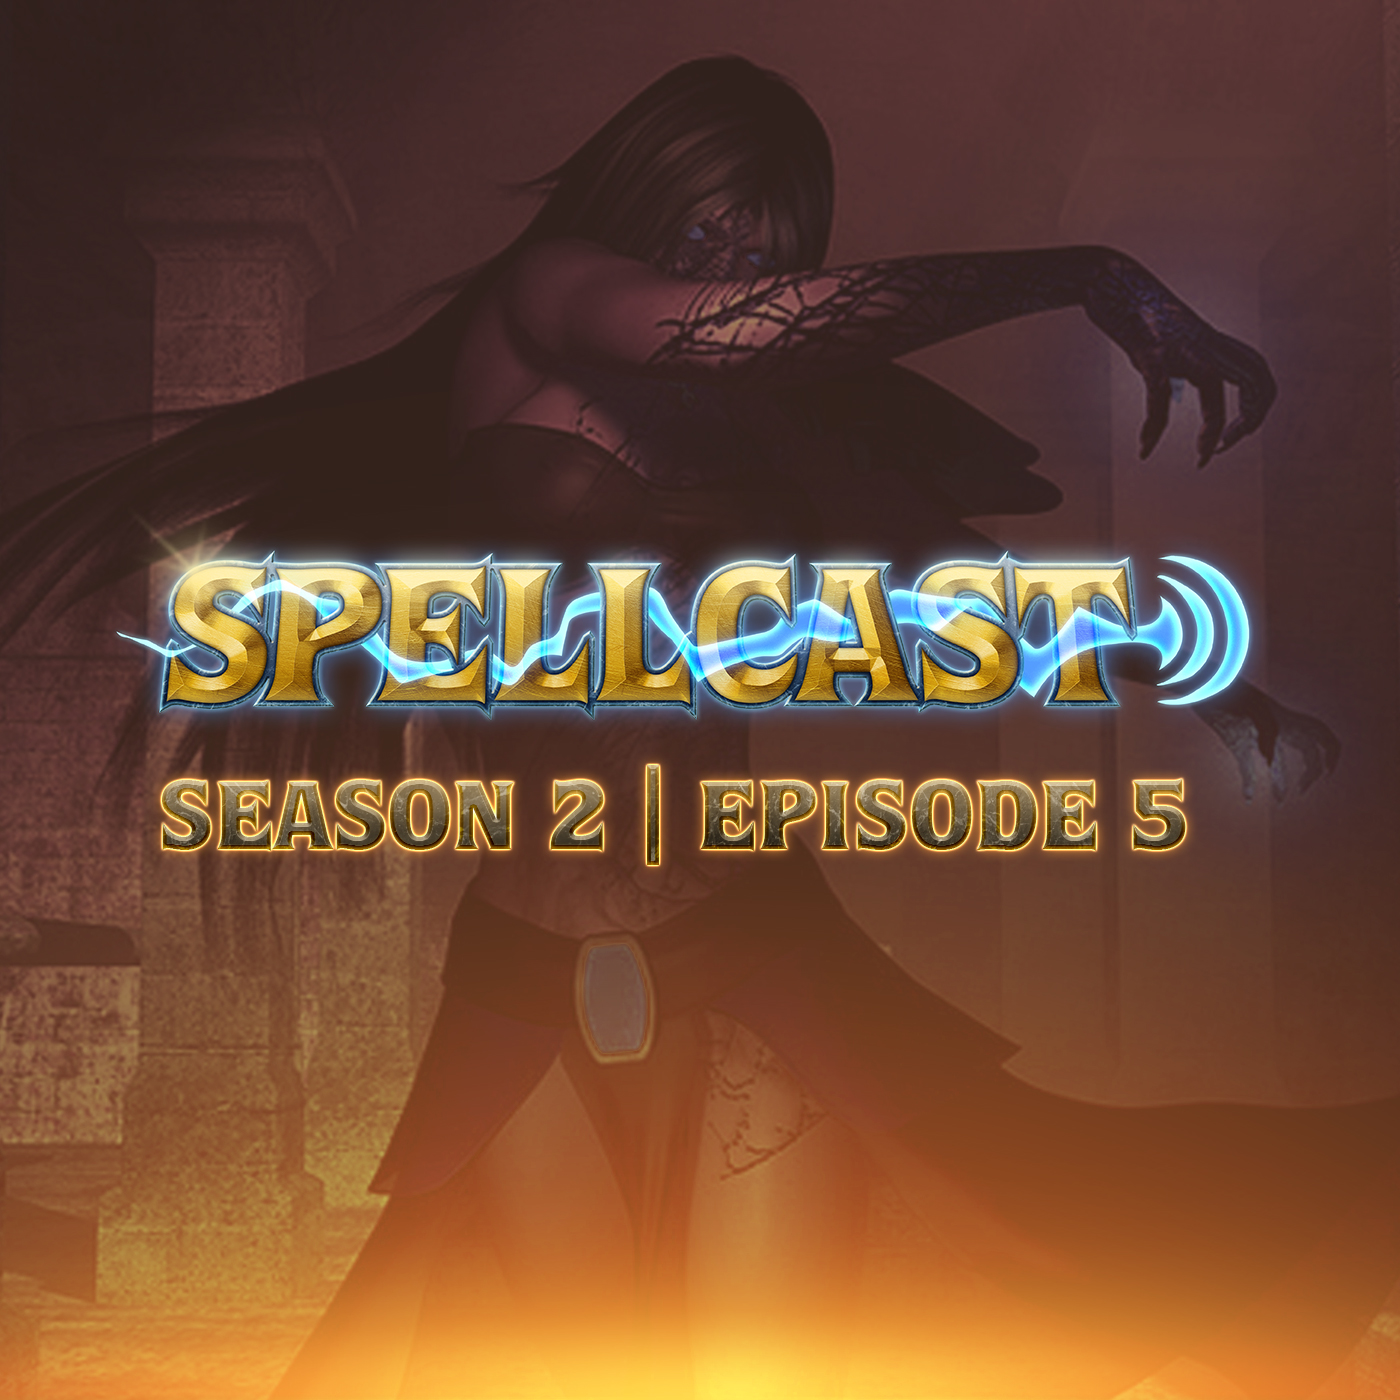 Spellcast Season 2 Episode 5